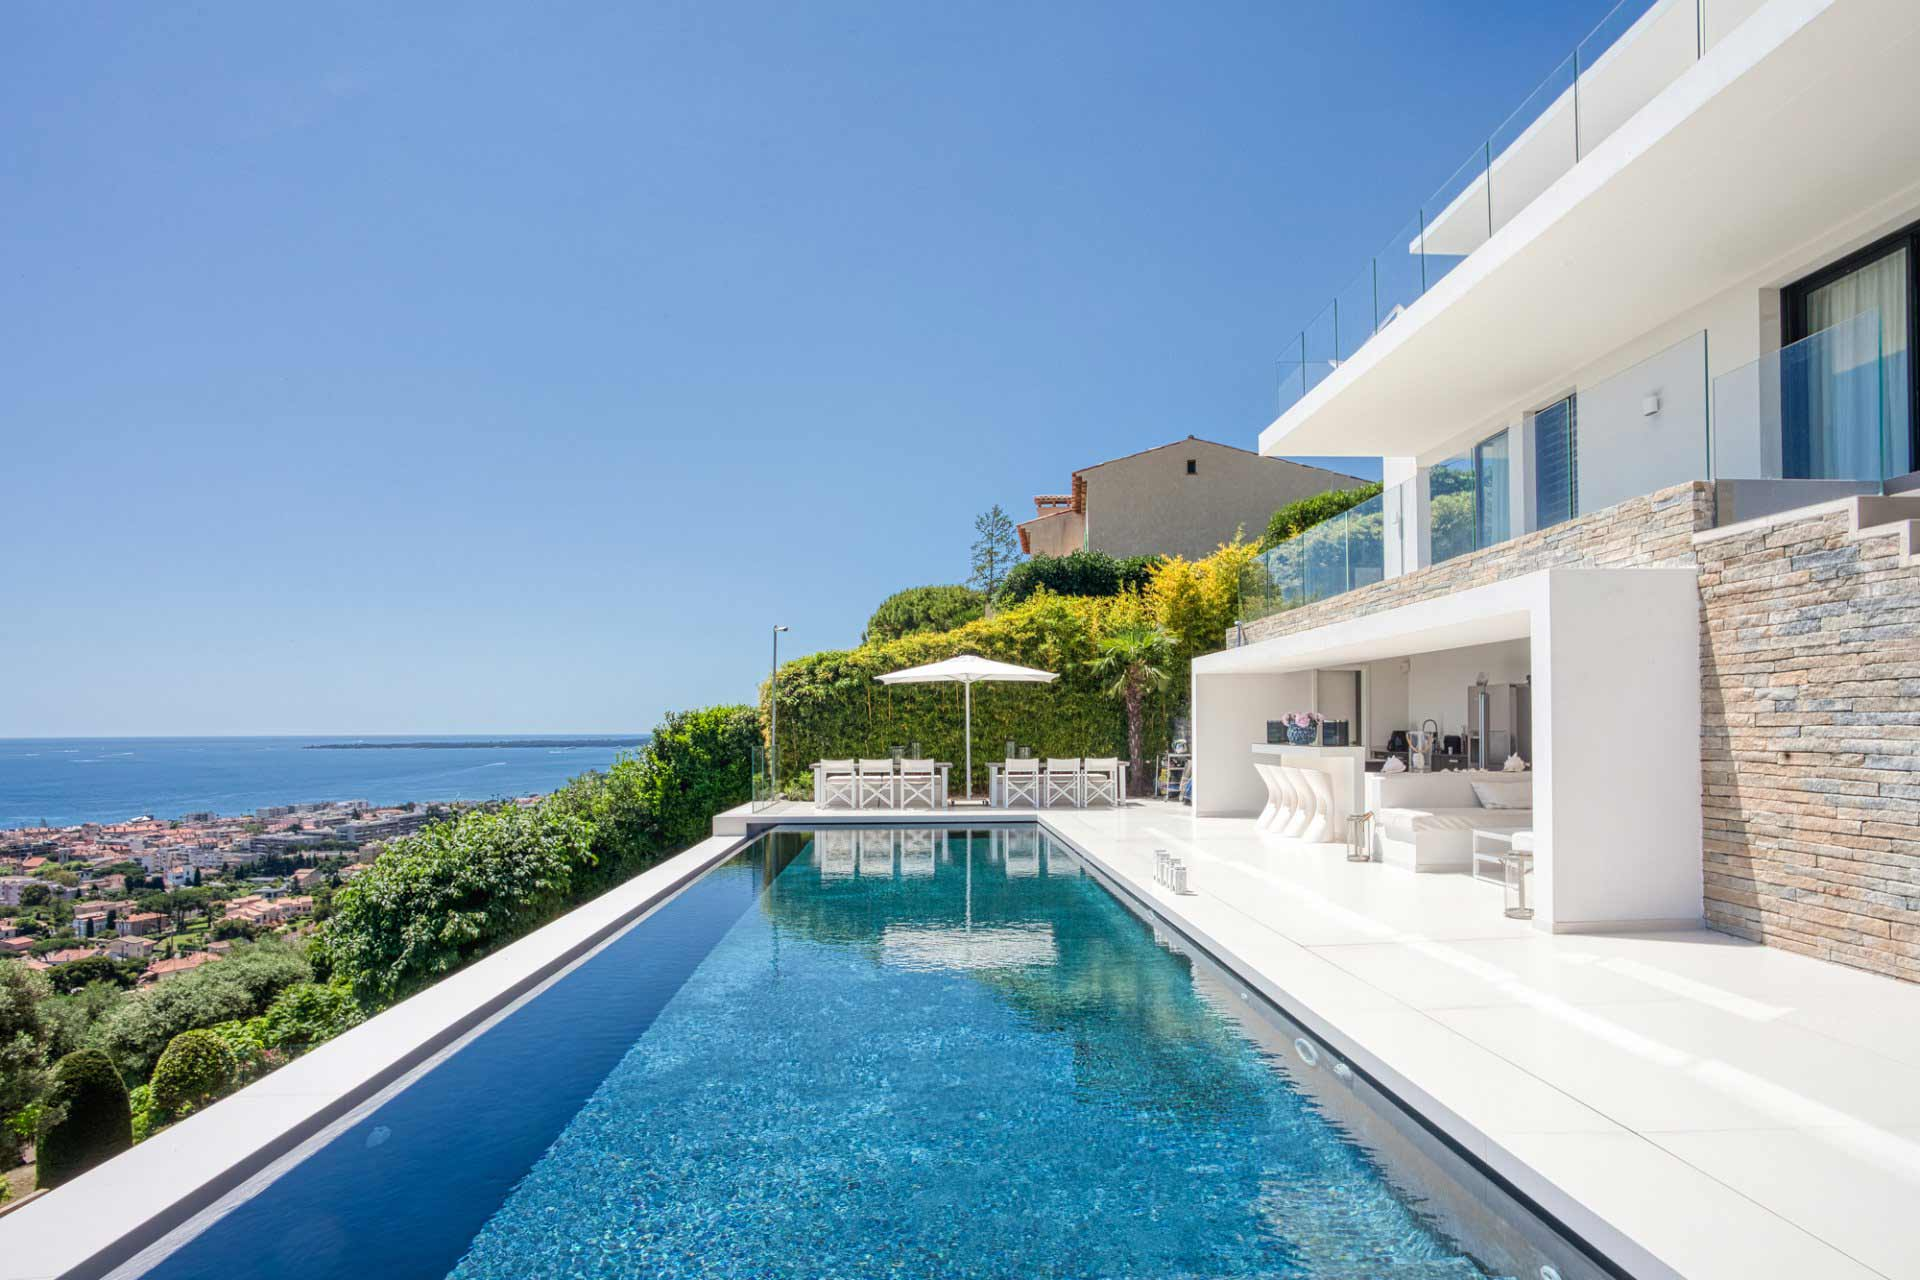 Golfe-Juan - France - House , 6 rooms, 4 bedrooms - Slideshow Picture 1